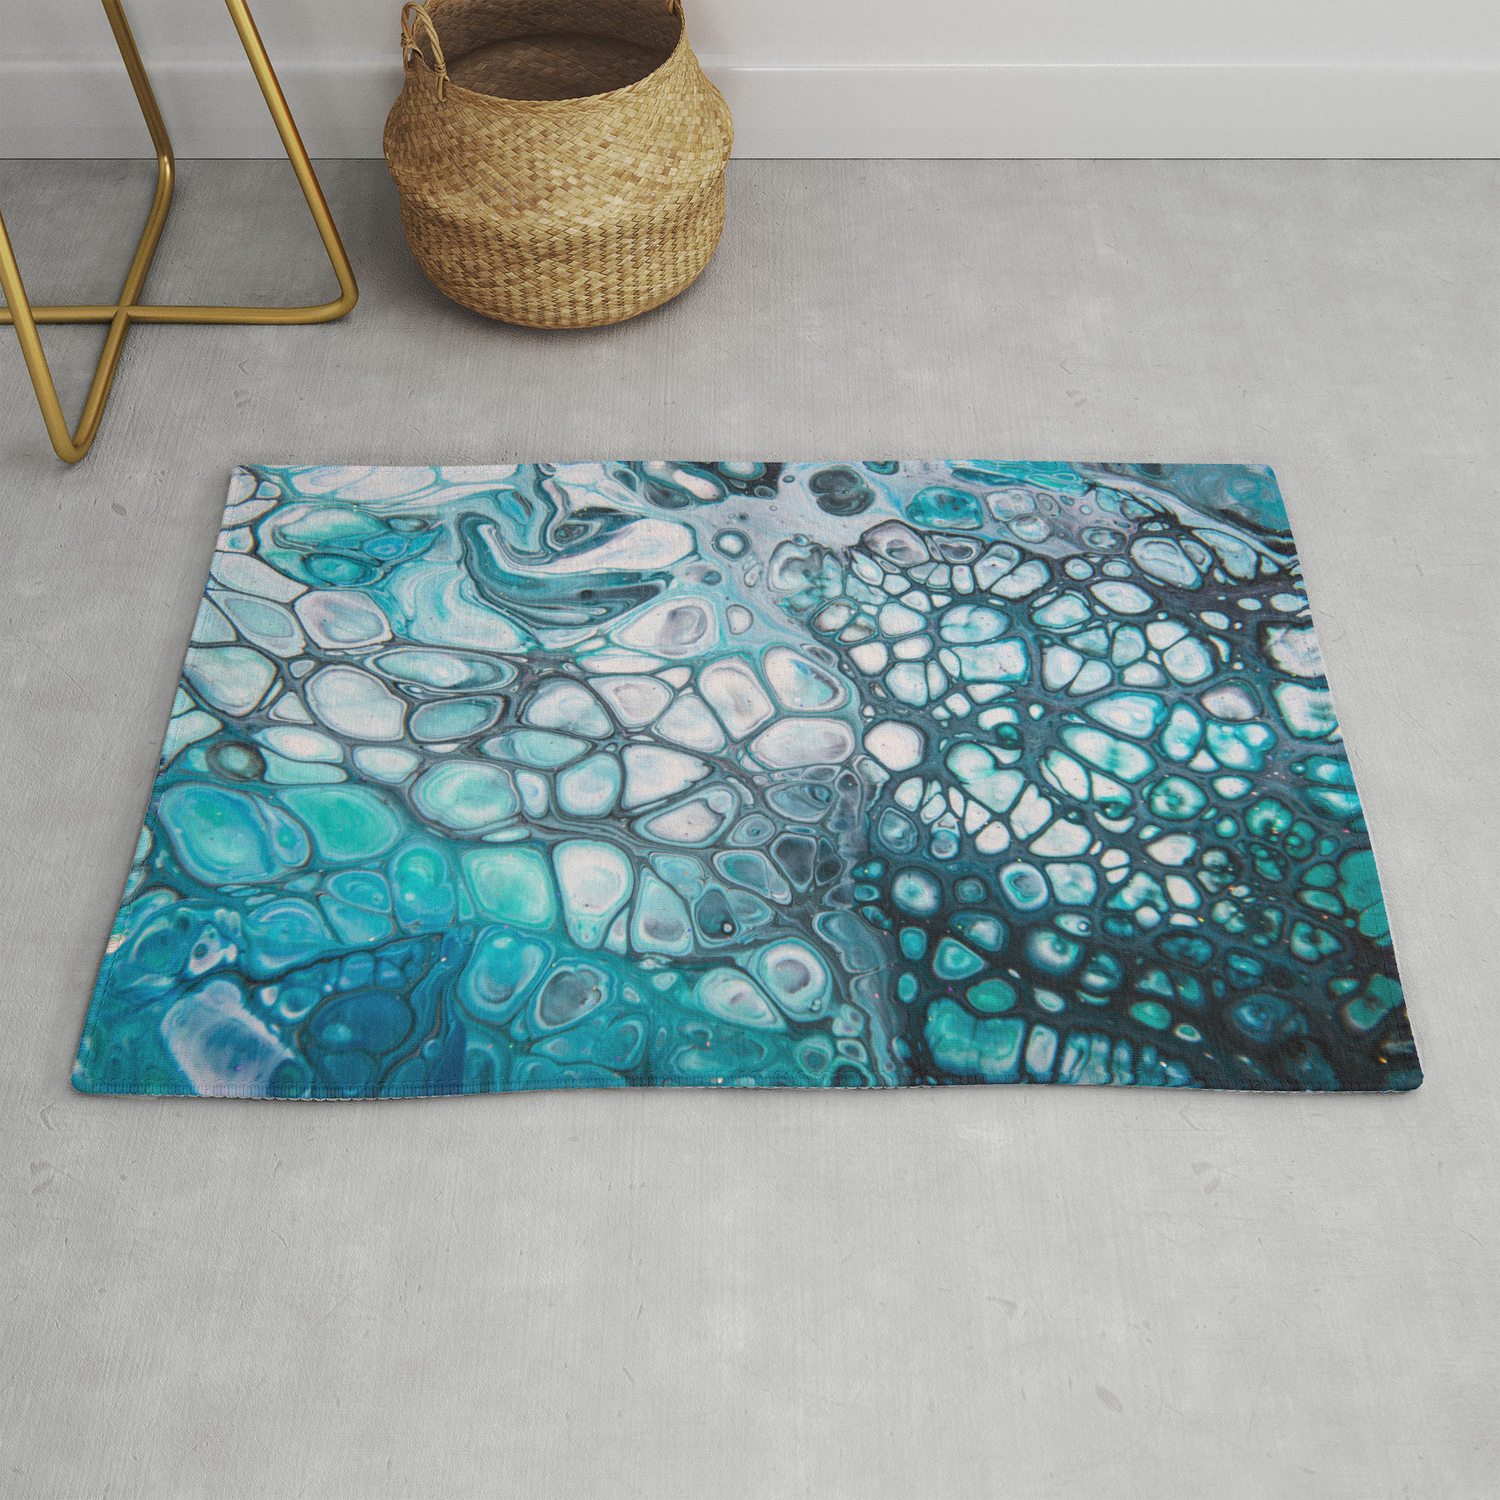 Dee Blue Acrylic Pour Rug by spydphotography